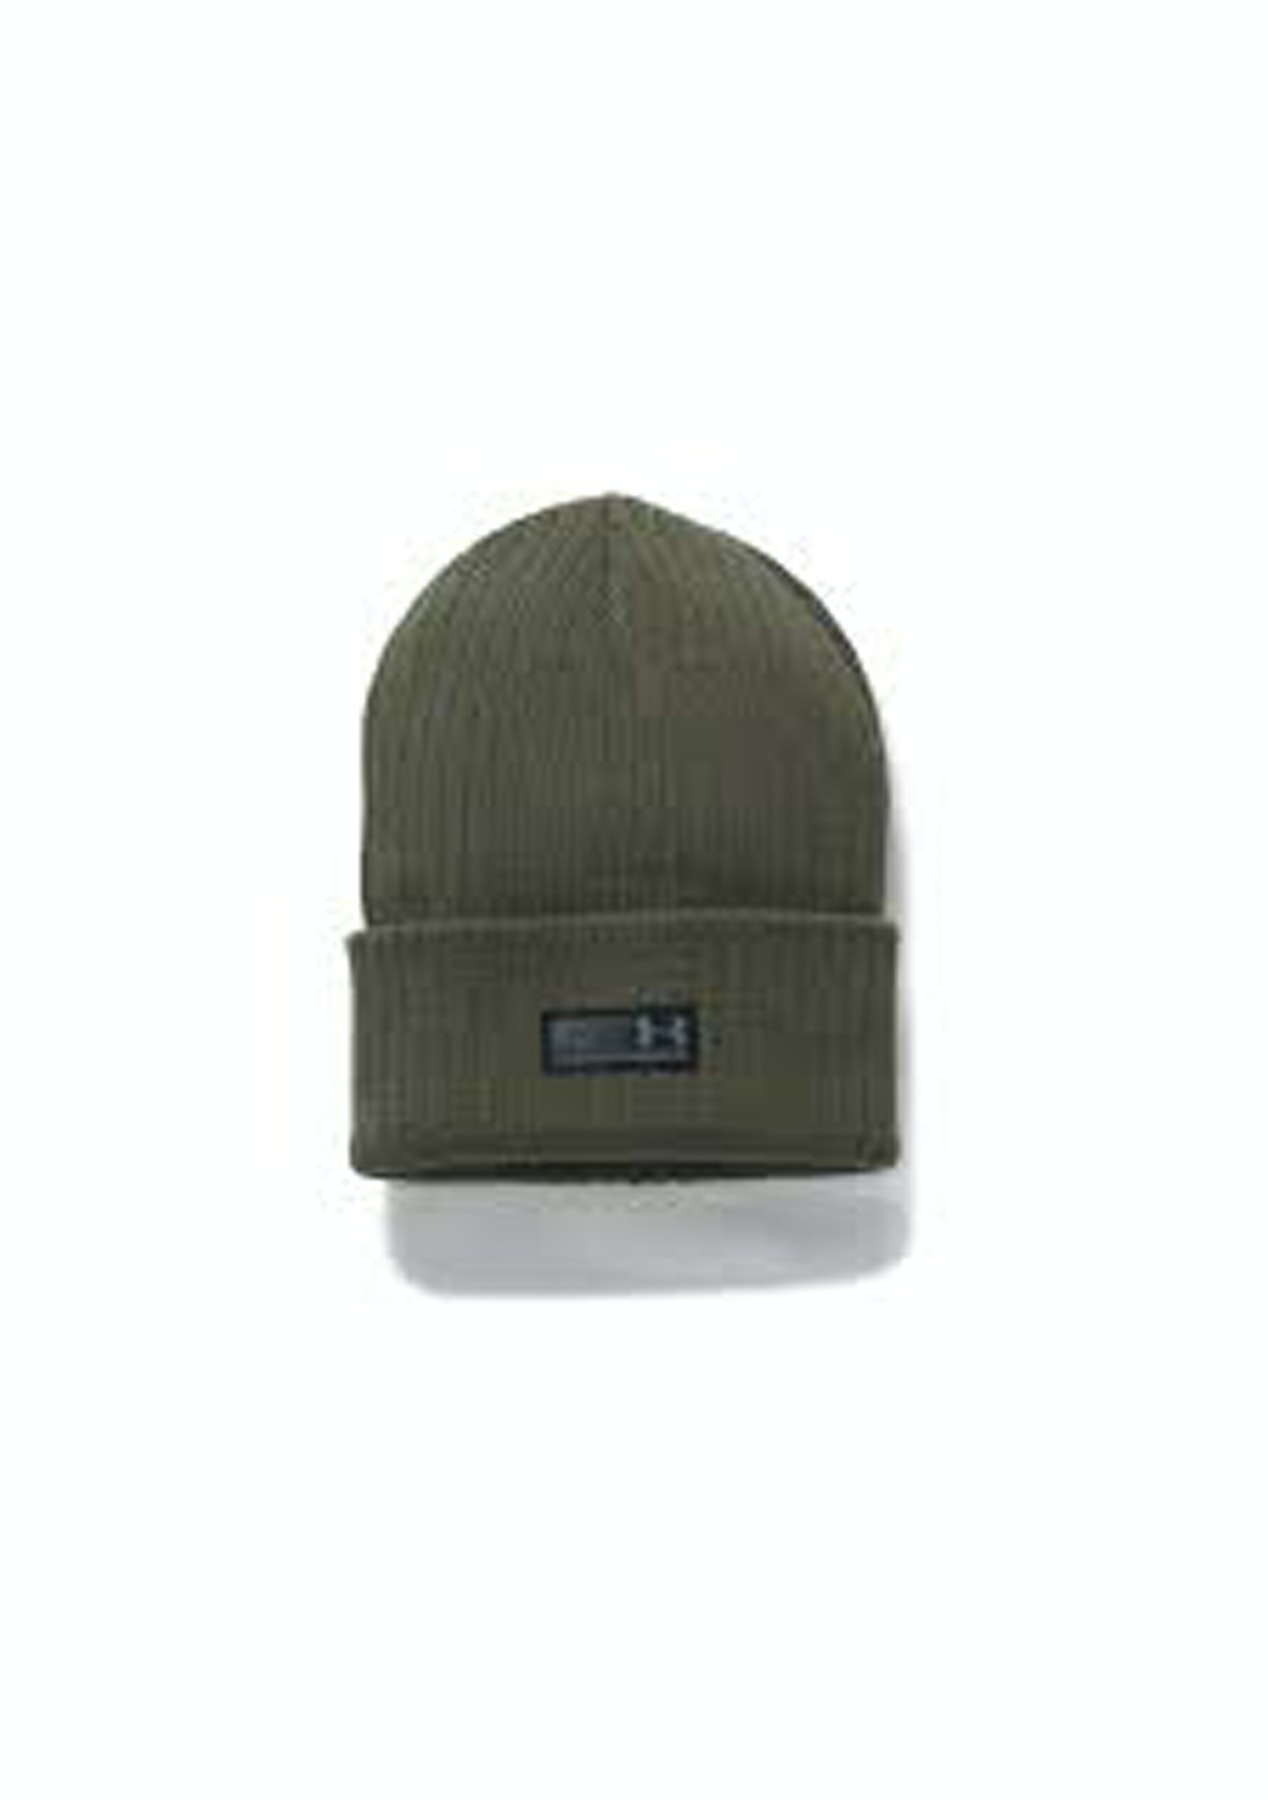 Under Armour - Men S Truck Stop Beanie - Rifle Green Black Graphite - Once  a Year Under Armour Mens - Onceit e422745930a3